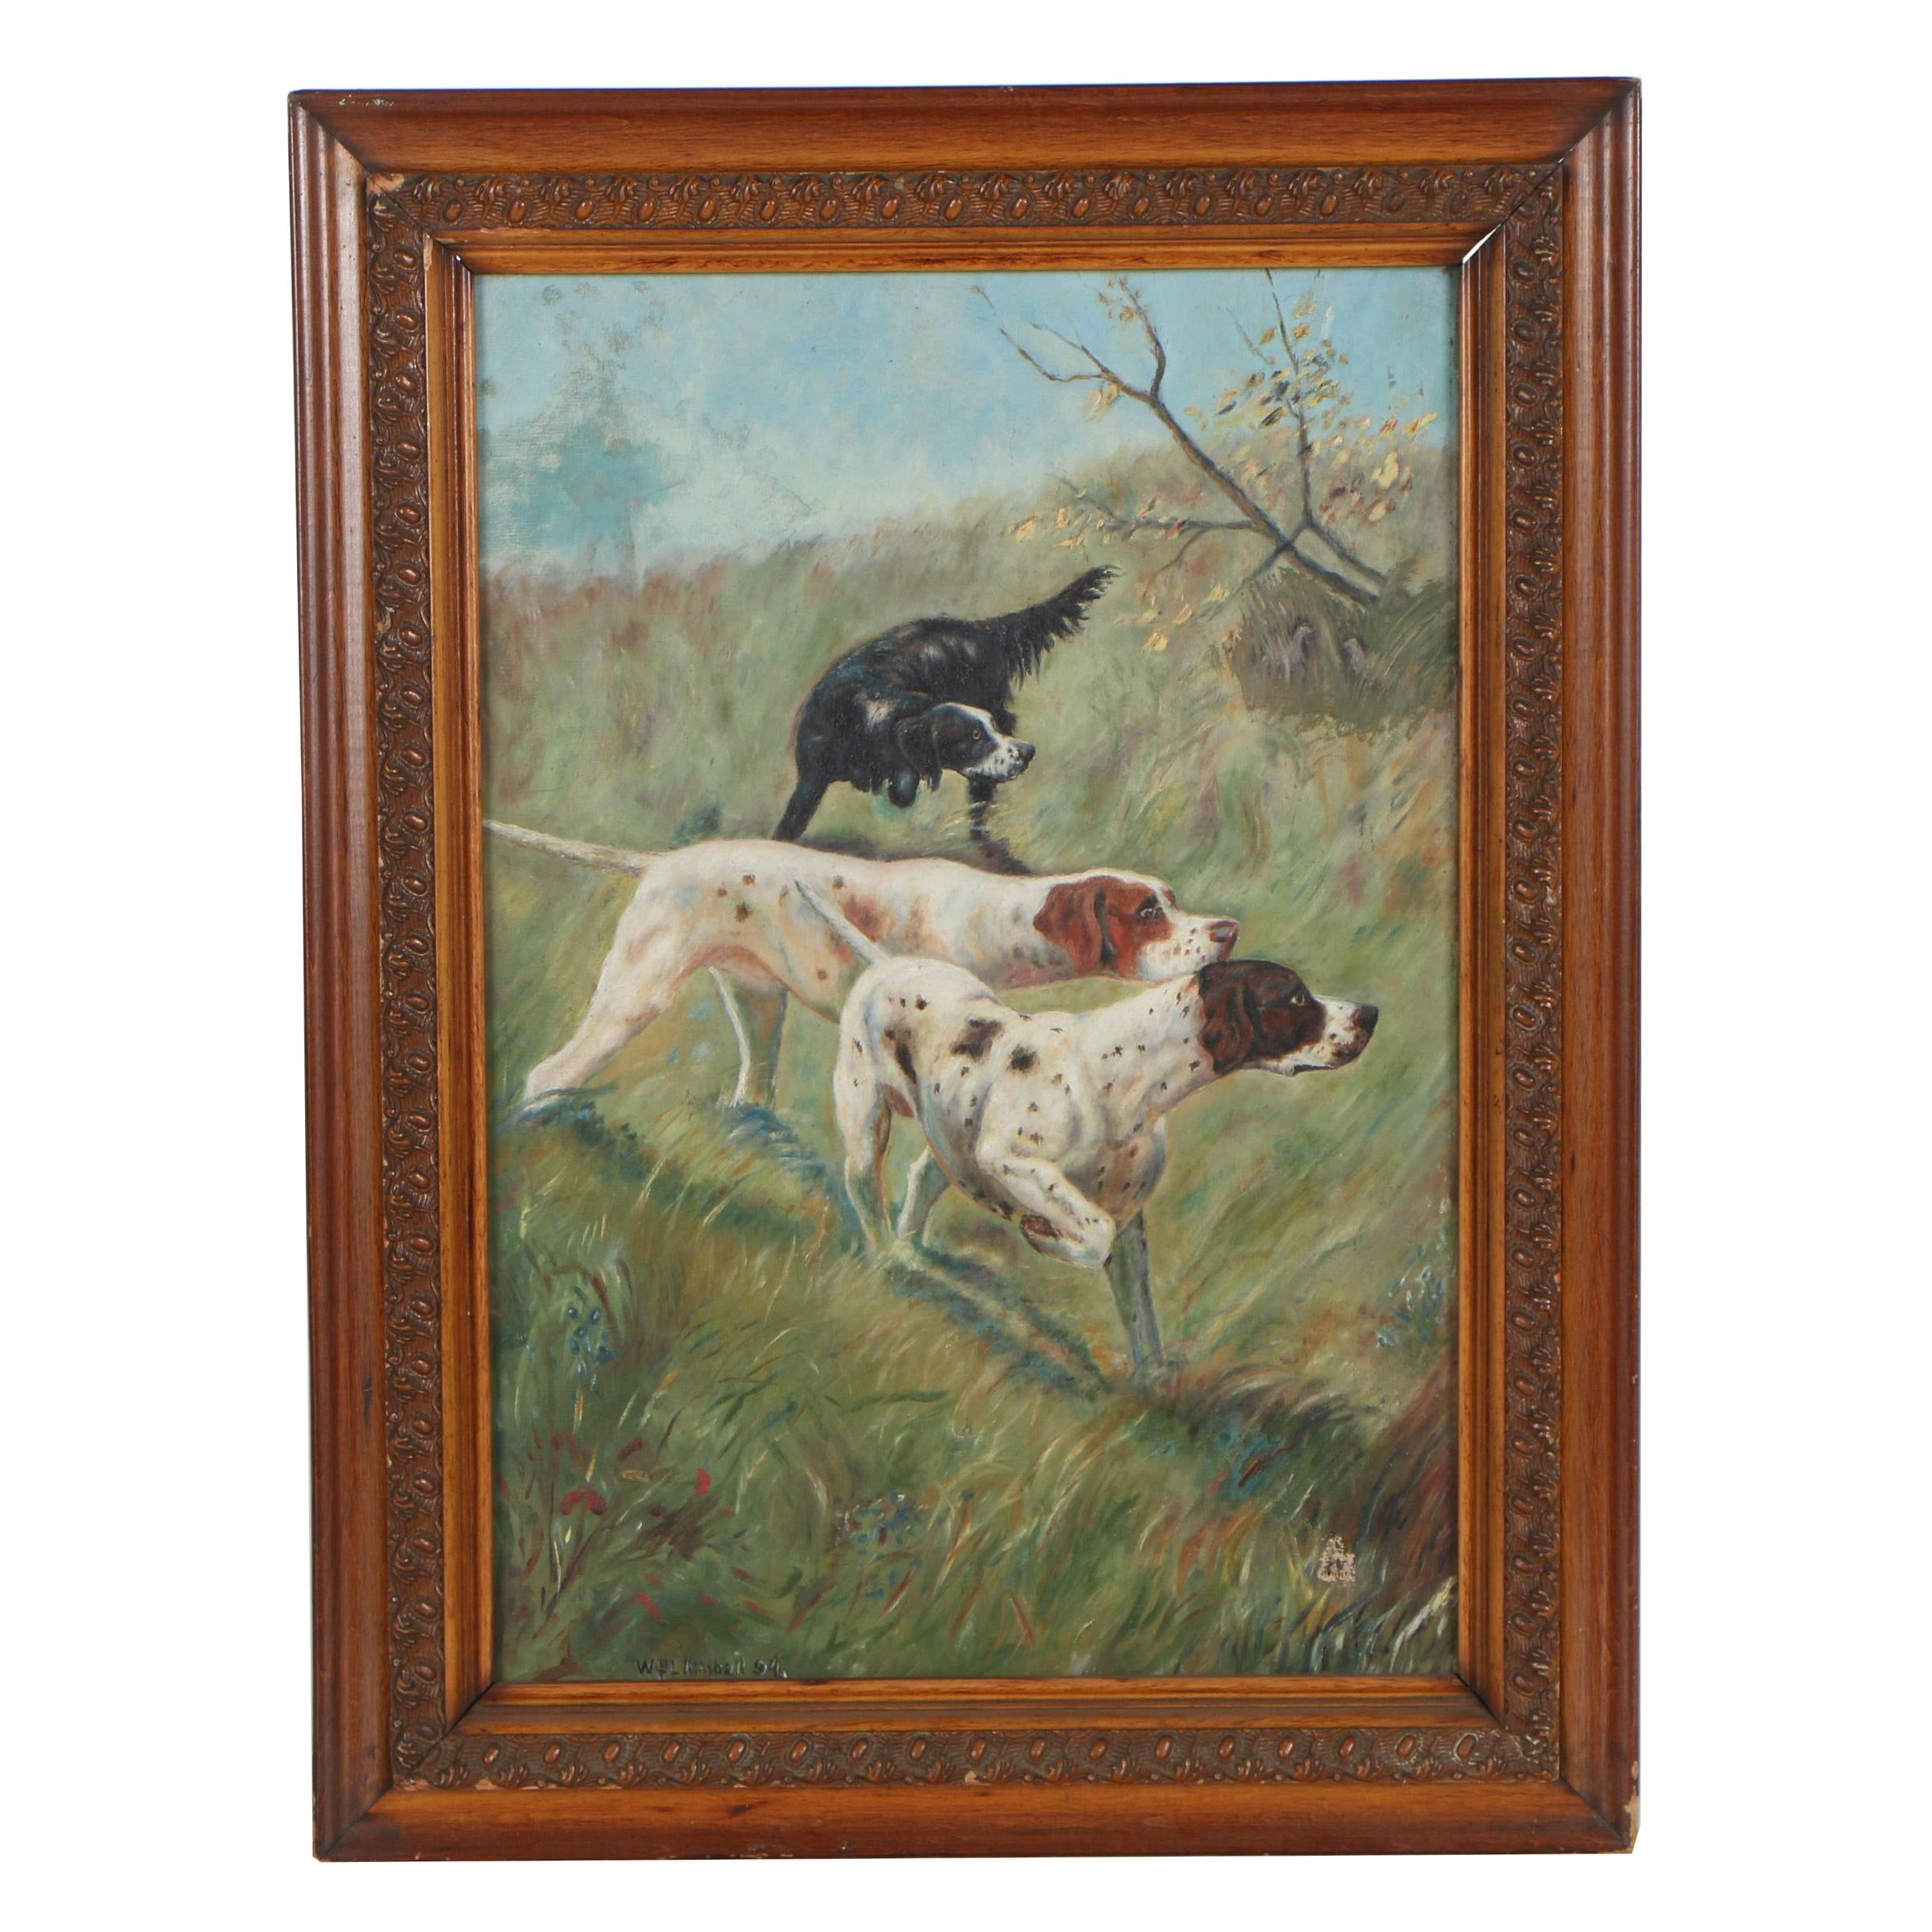 William L Kimball 1894 Oil Painting